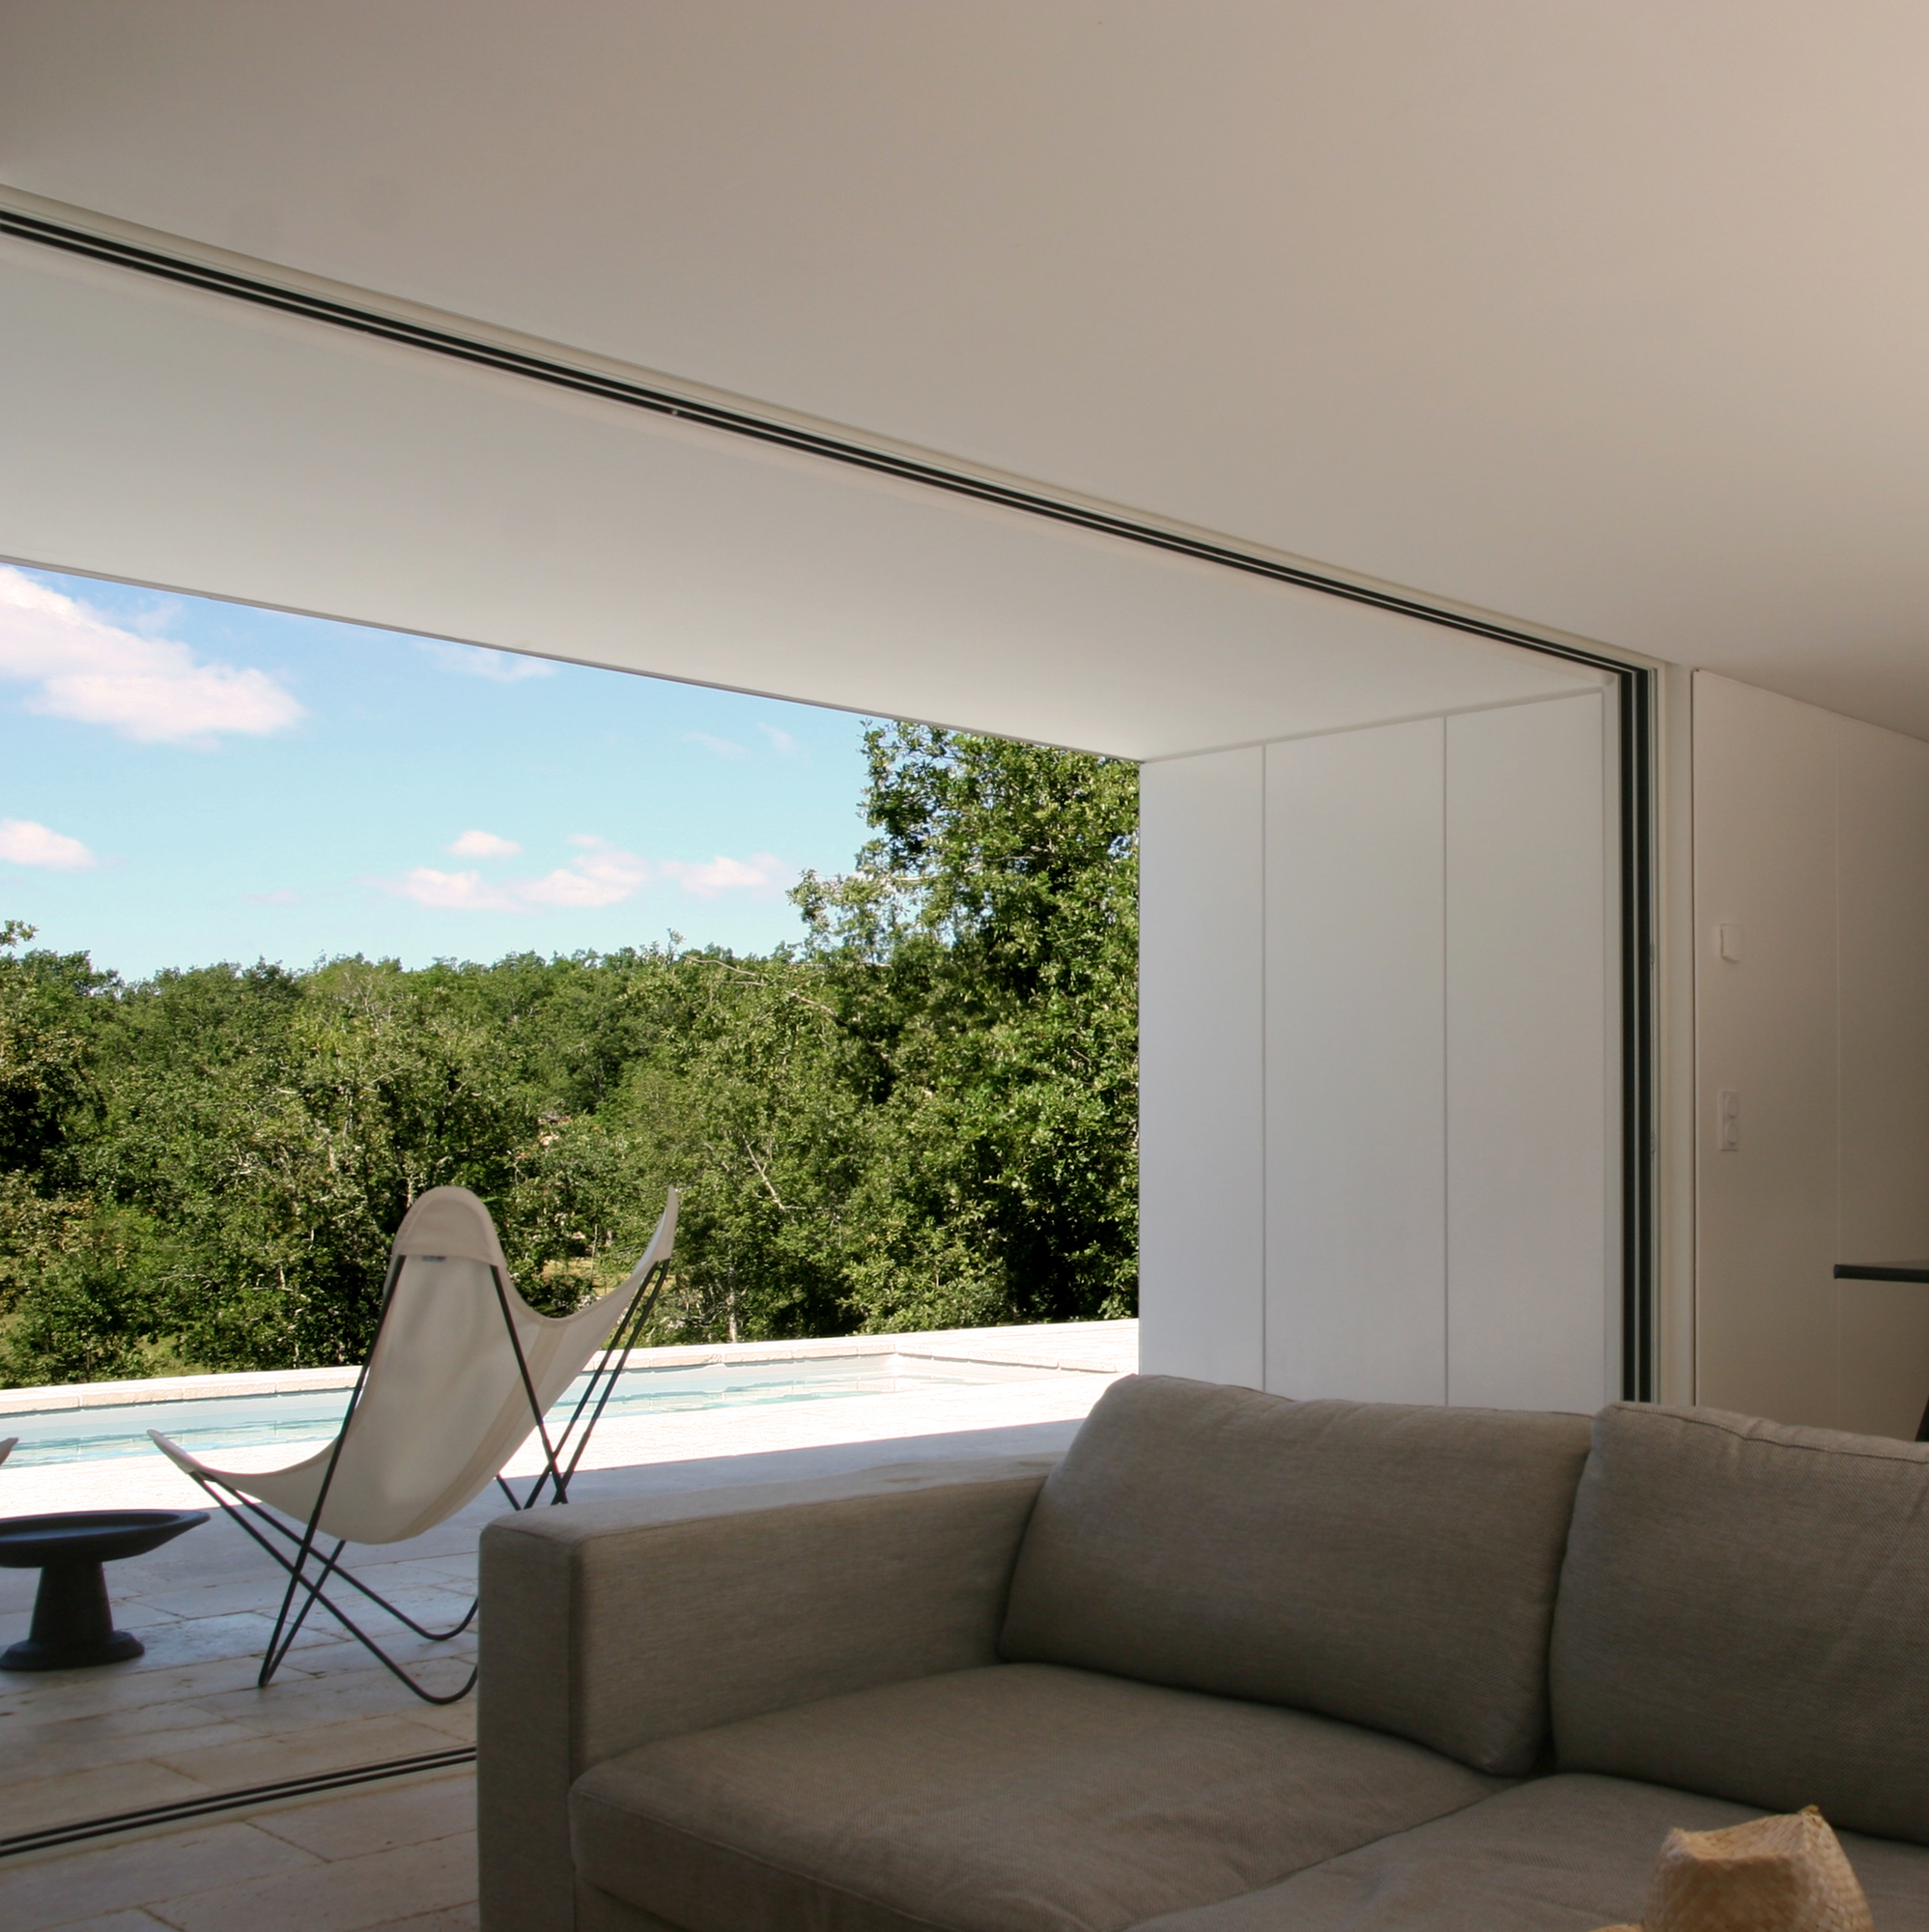 House G, Escamps, France - Image 3